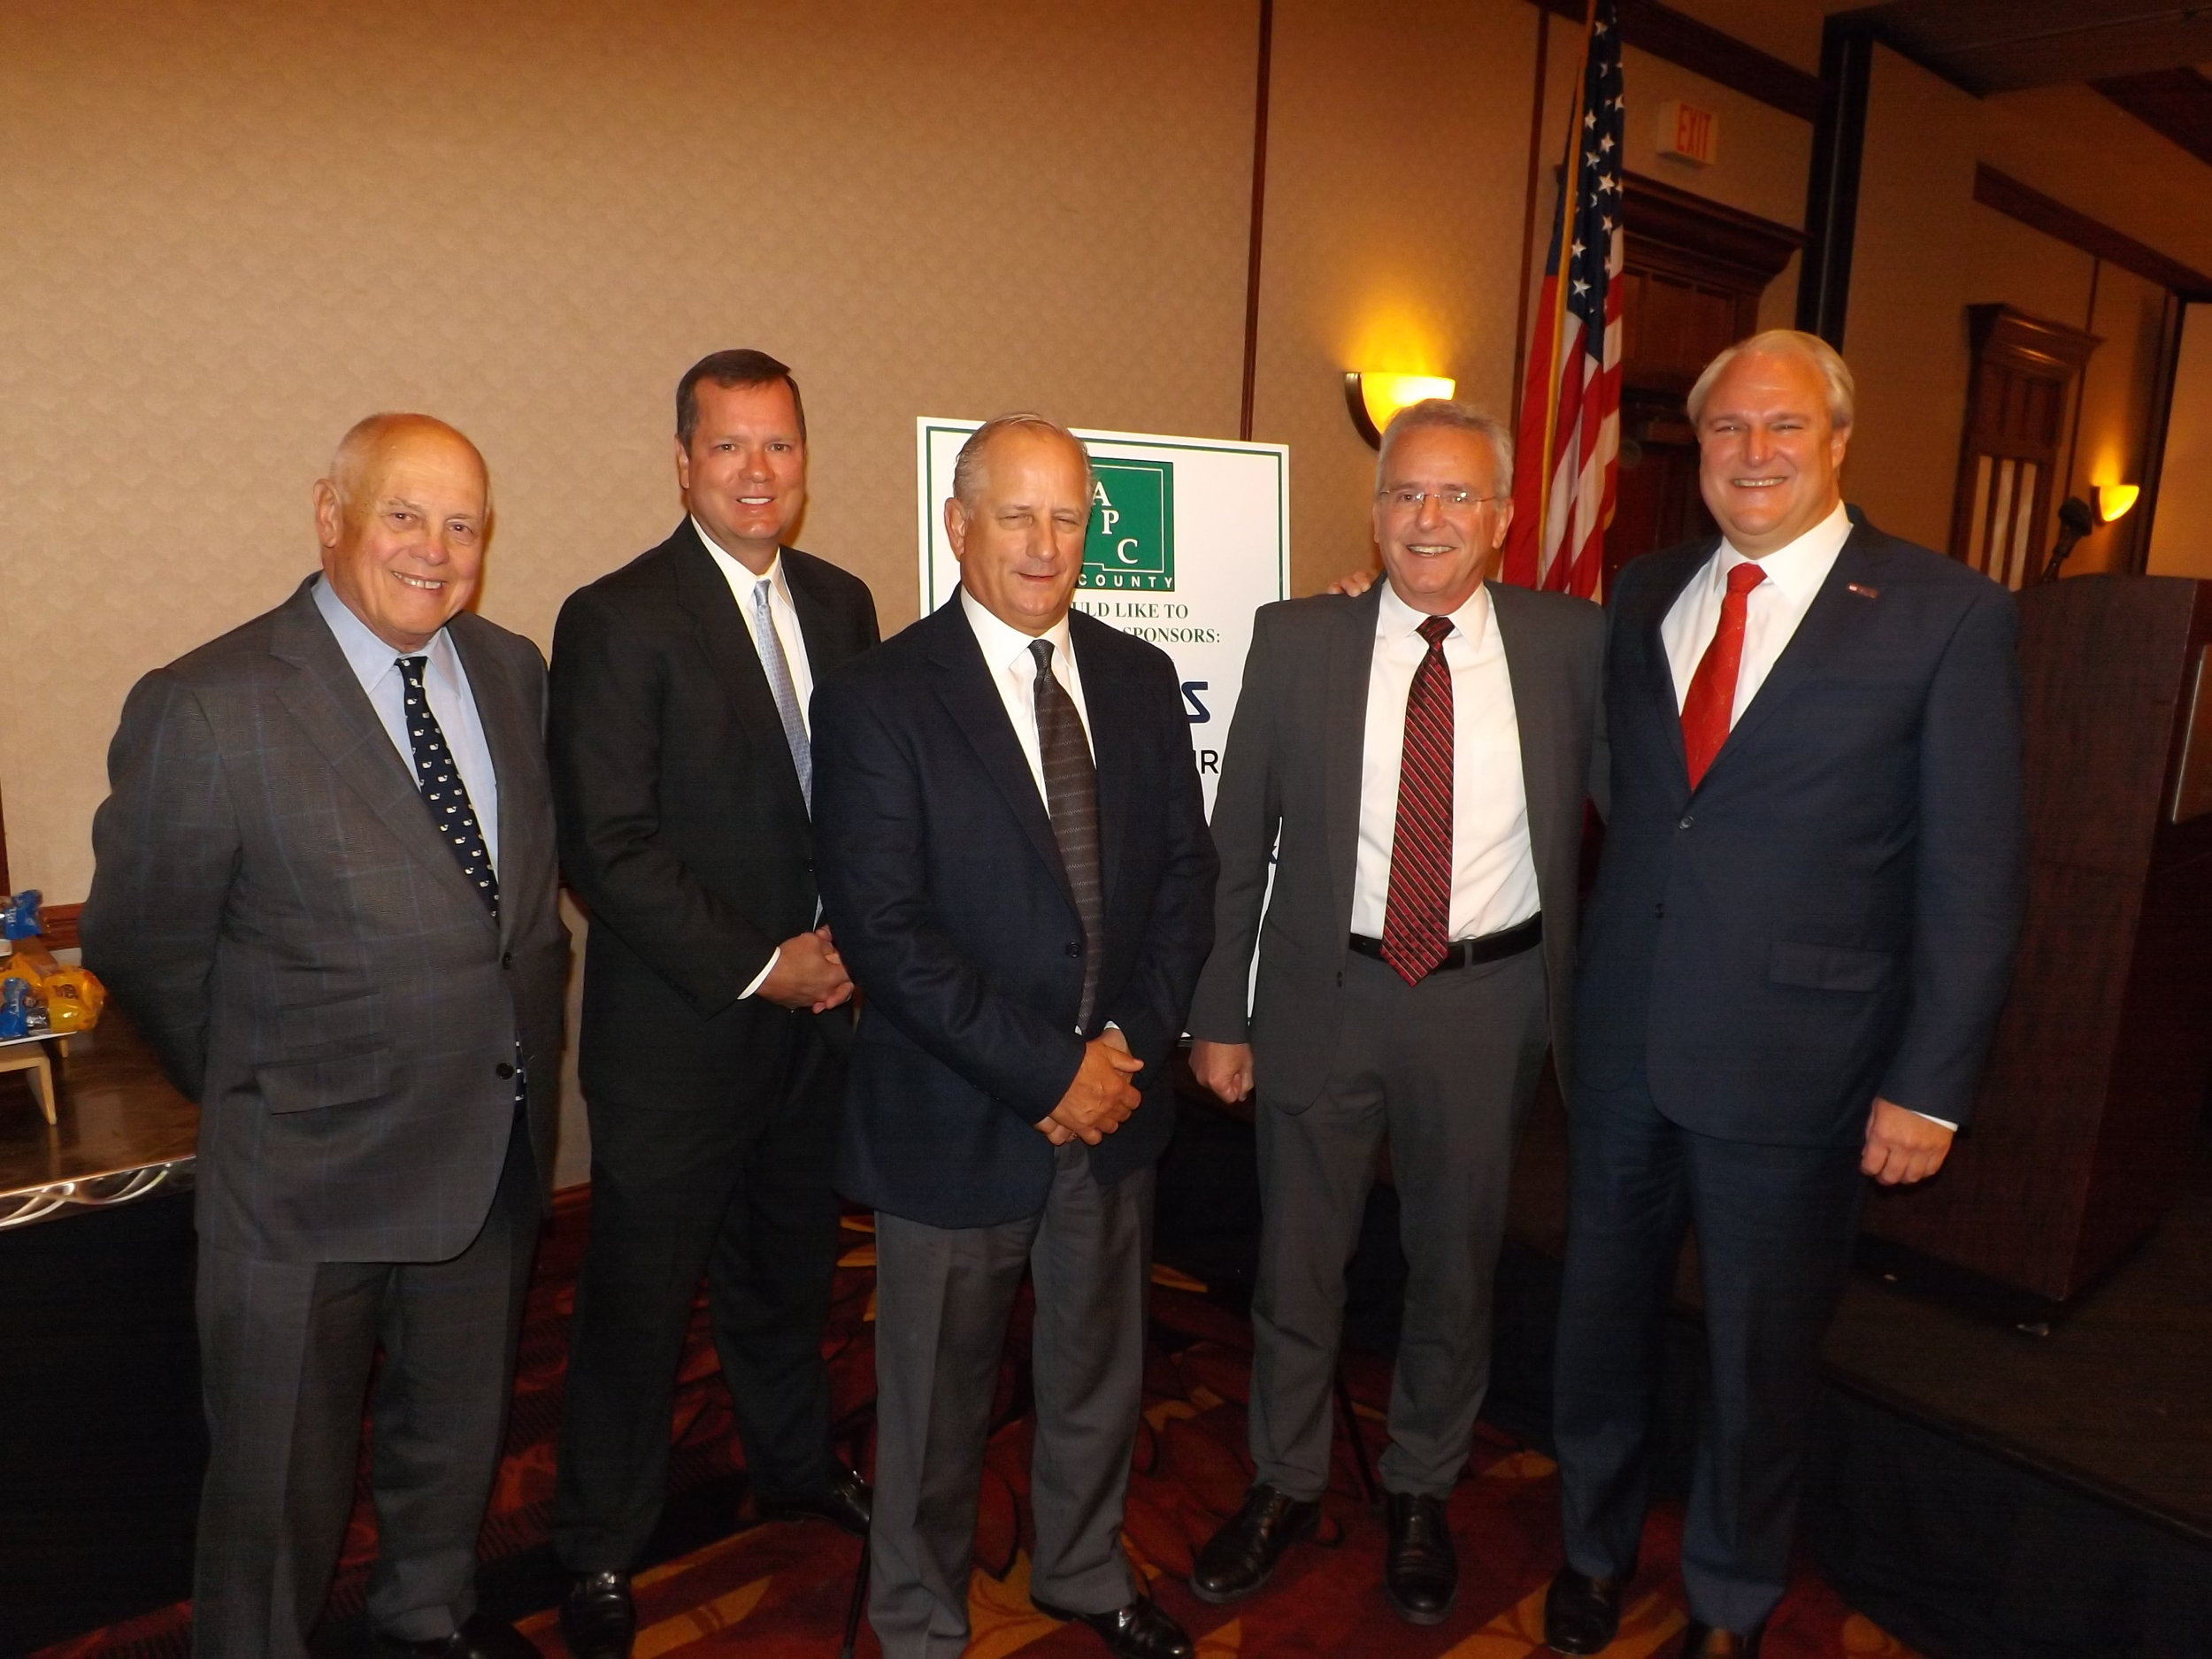 Pictured from L to R Mike Schueler, Schueler Group of Companies; Commissioner Dave Young, Steve Roat, President - Area Progress Council; Ron Lipps, ADVICS Manufacturing and Mike Prescott, US Bank